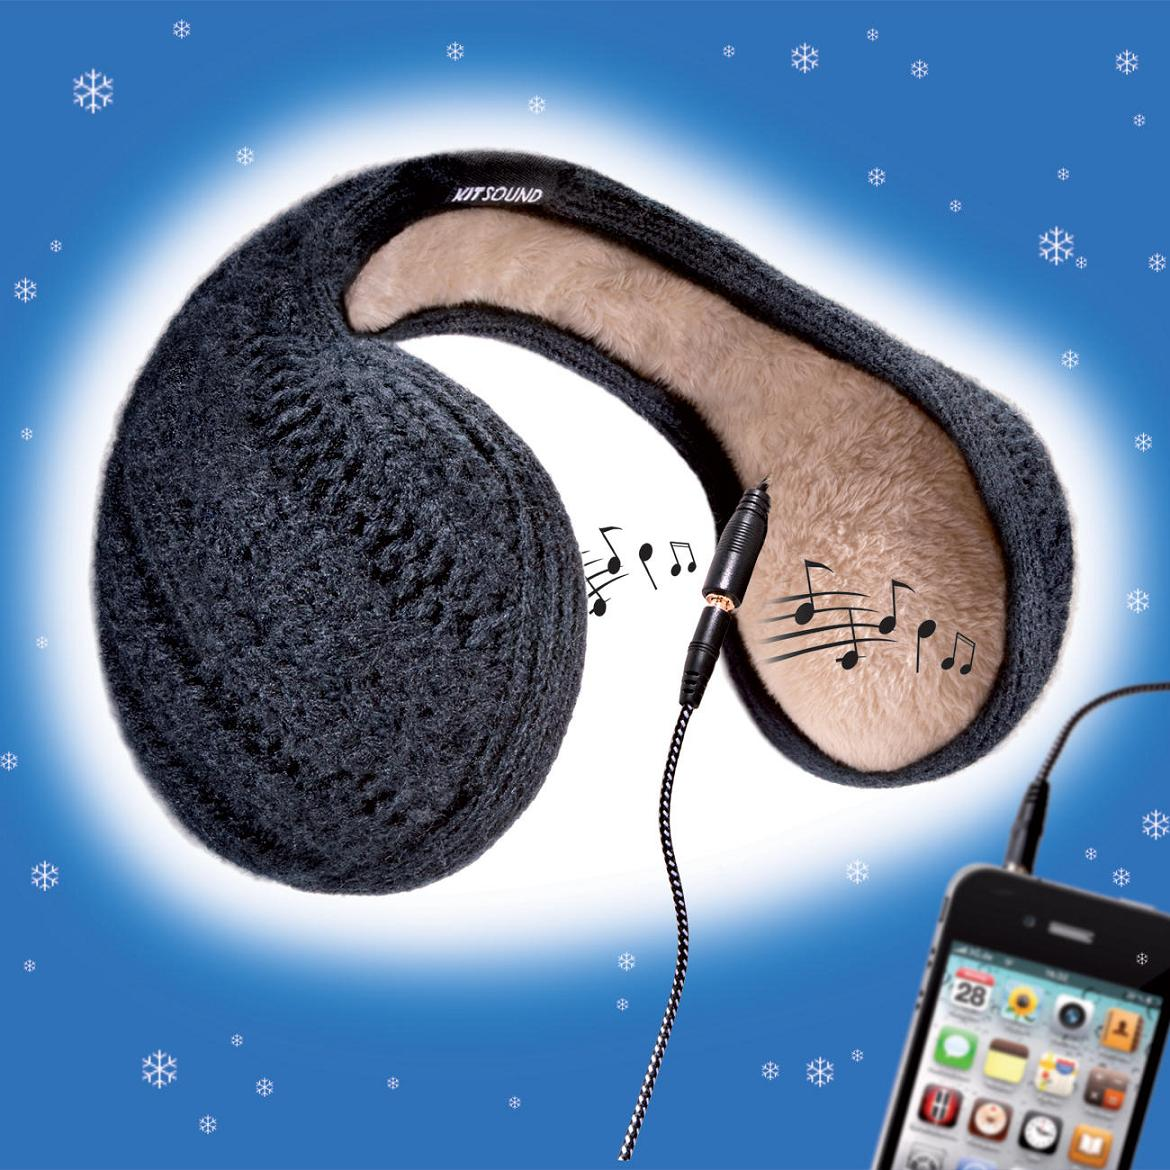 15 Creative Headphones and Unusual Earphones - Part 4.